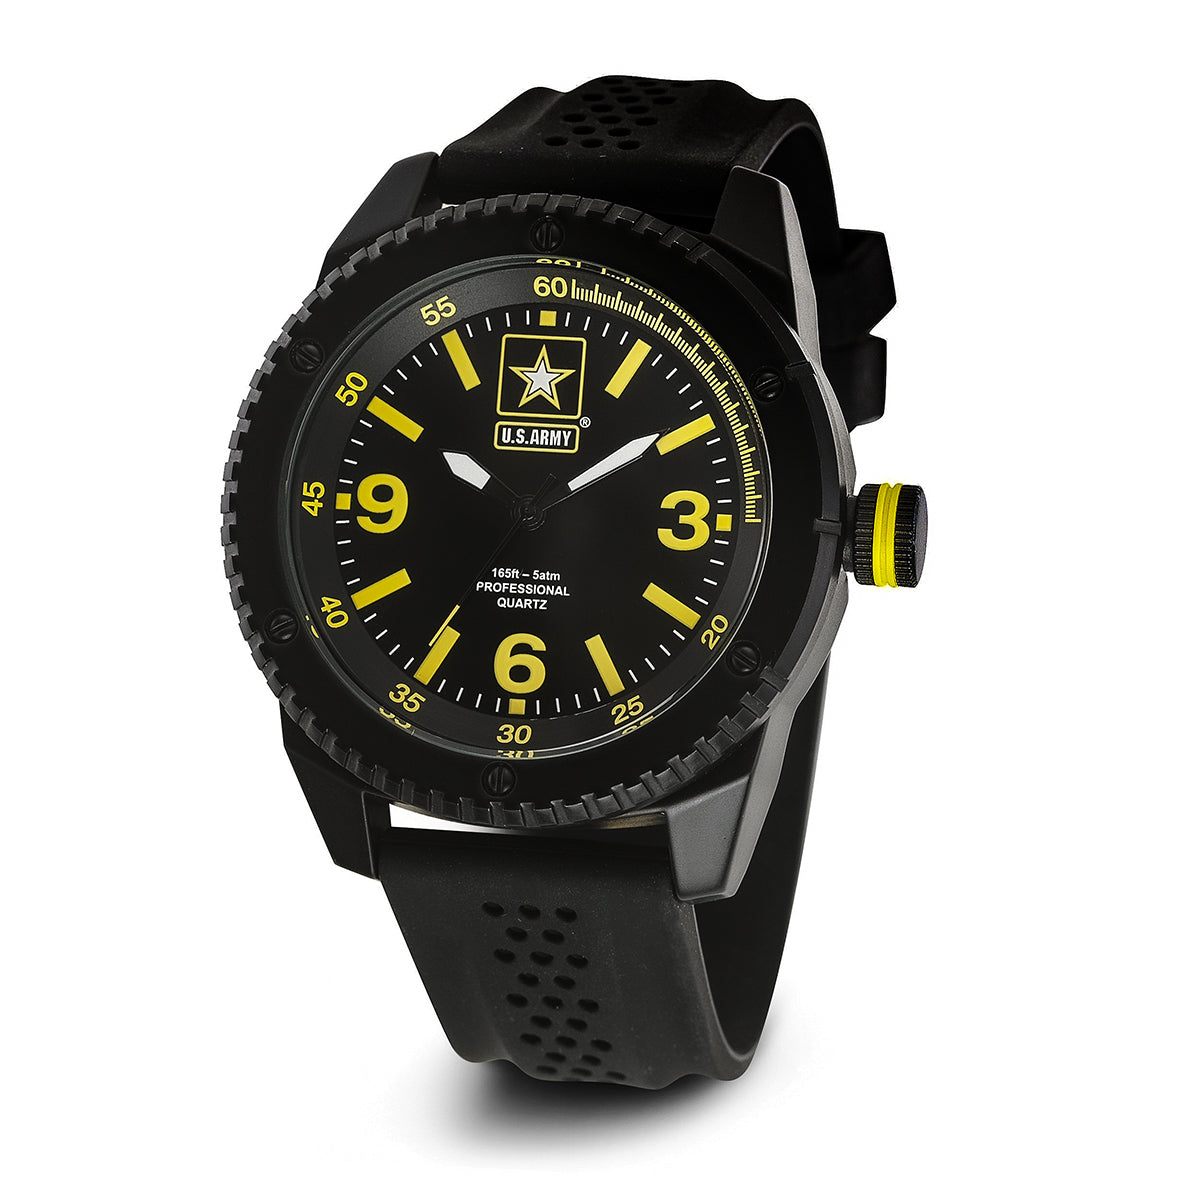 U.S. Army C20 | Analog Display Watch